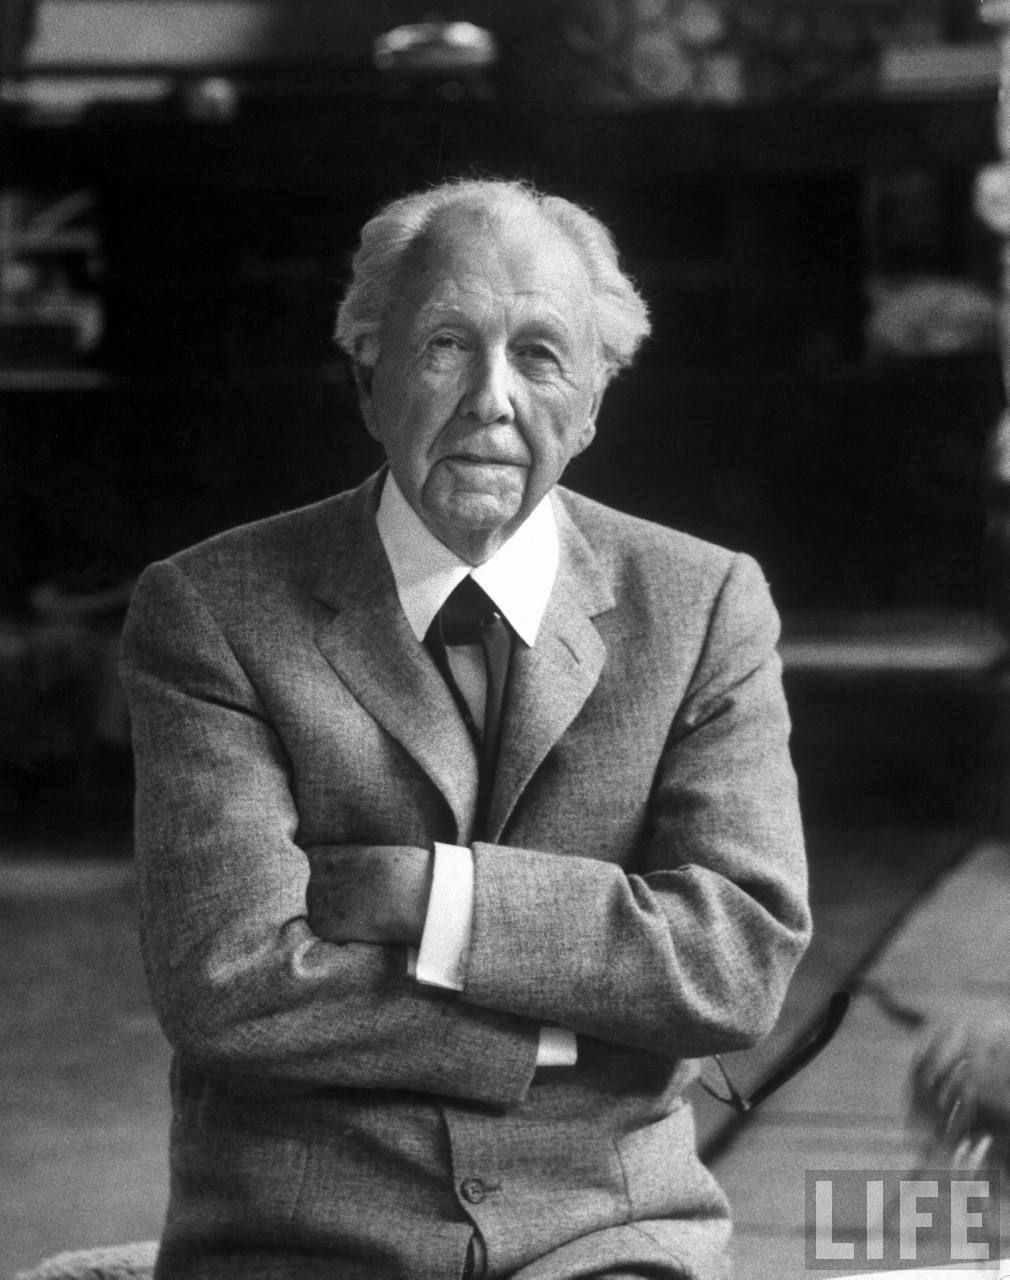 do all great architects look the same le corbusier mies van der rohe oscar niemeyer philip johnson frank lloyd wright luis barragan alvaro siza - The Most Famous Architects